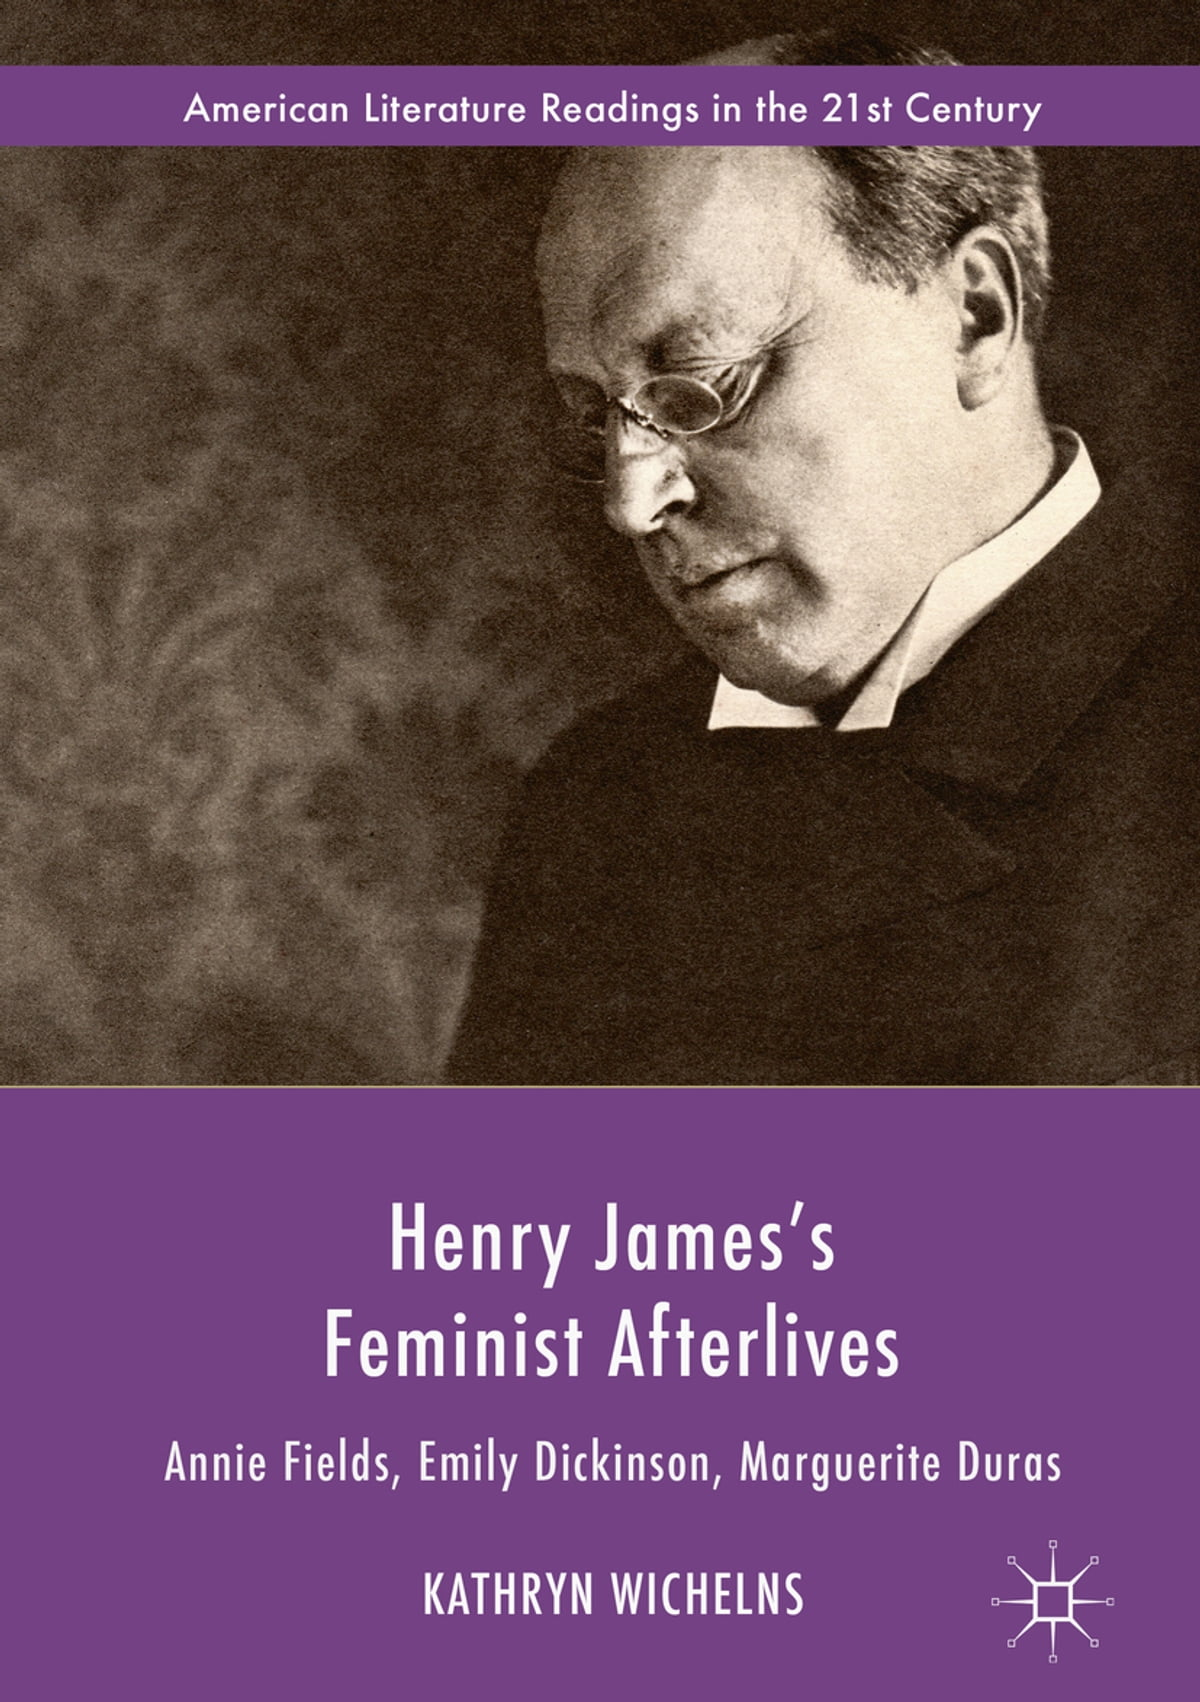 Henry James Henry James S Feminist Afterlives Ebook By Kathryn Wichelns Rakuten Kobo